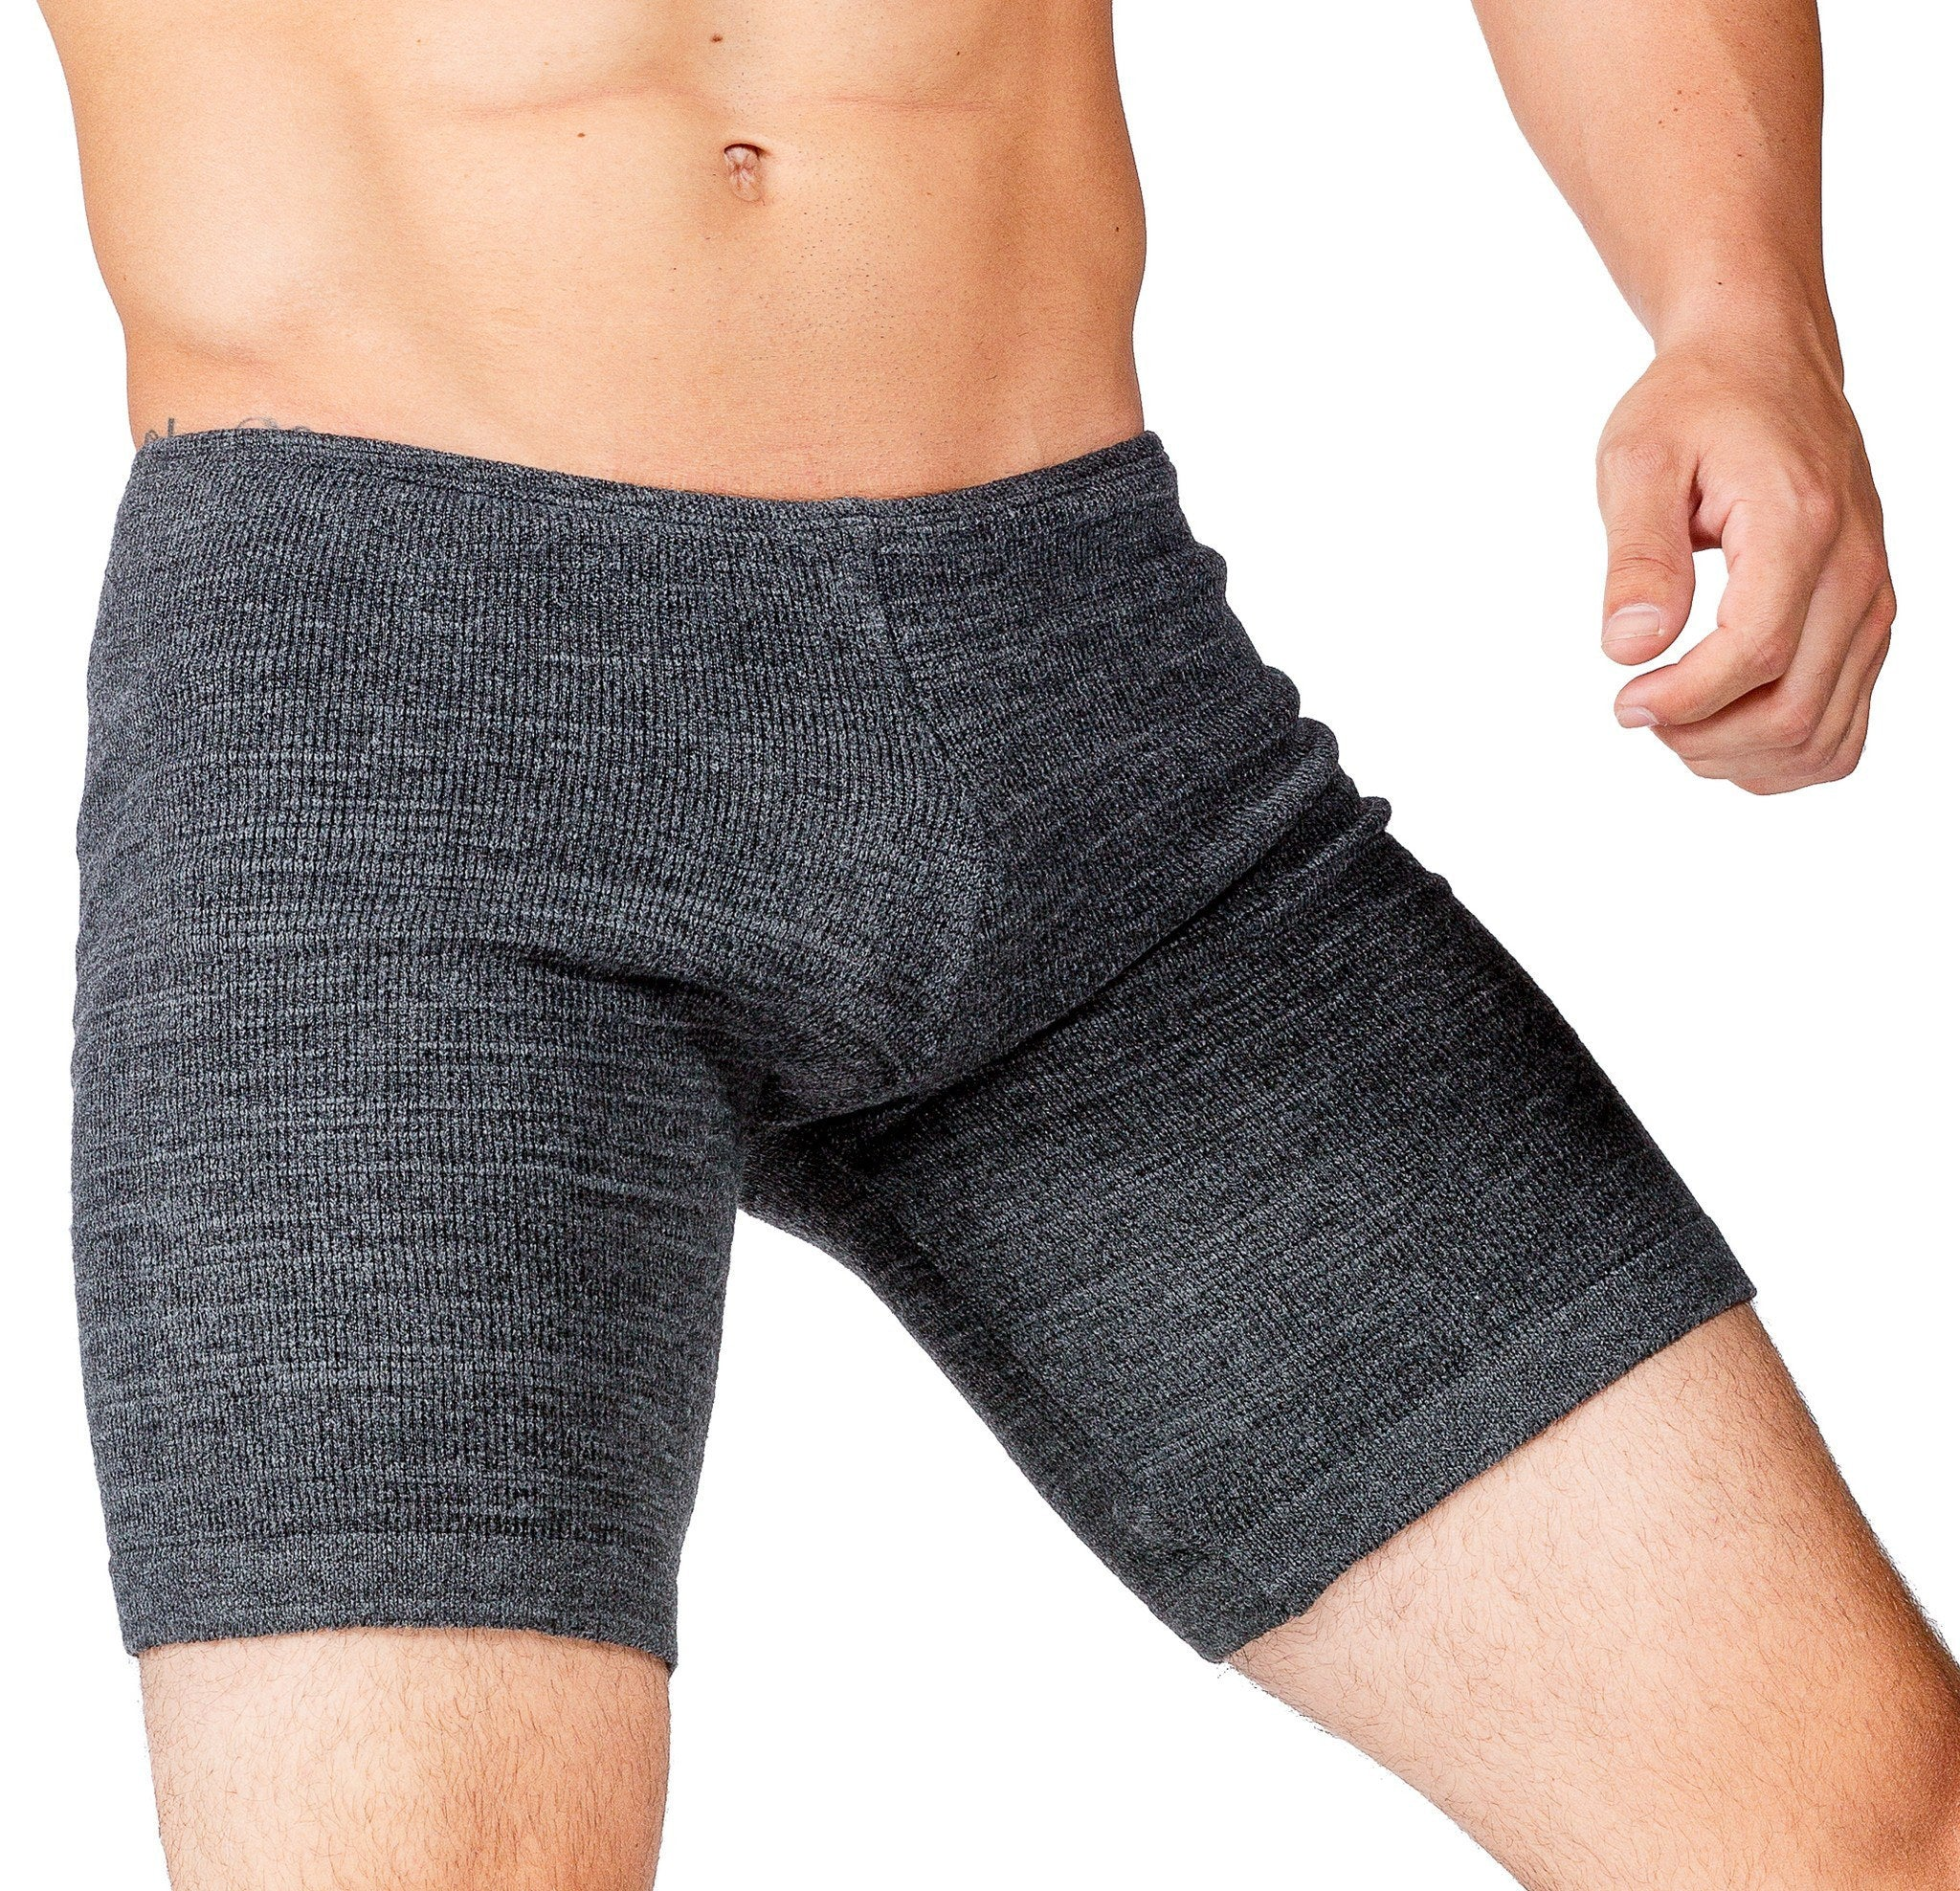 Men's Dance Shorts / Men's Dancewear @KDdanceNewYork #MadeInUSA - 8